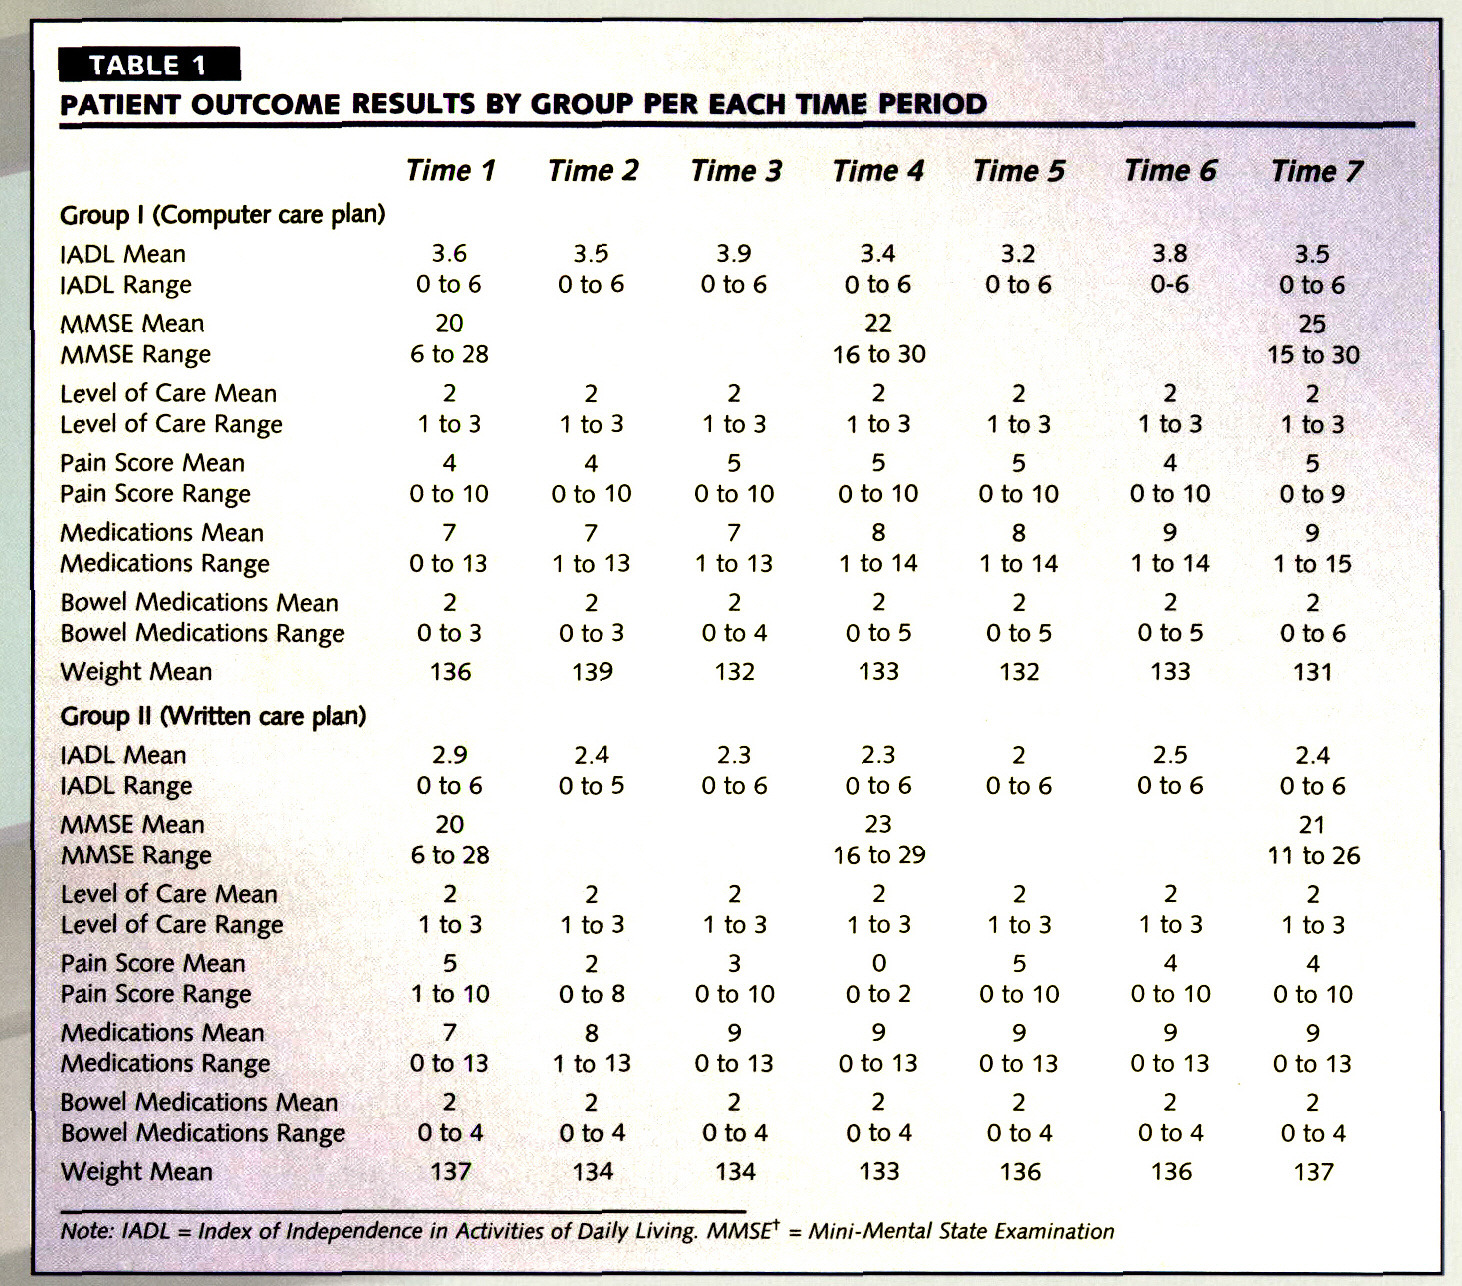 TABLE 1PATIENT OUTCOME RESULTS BY GROUP PER EACH TIME PERIOD